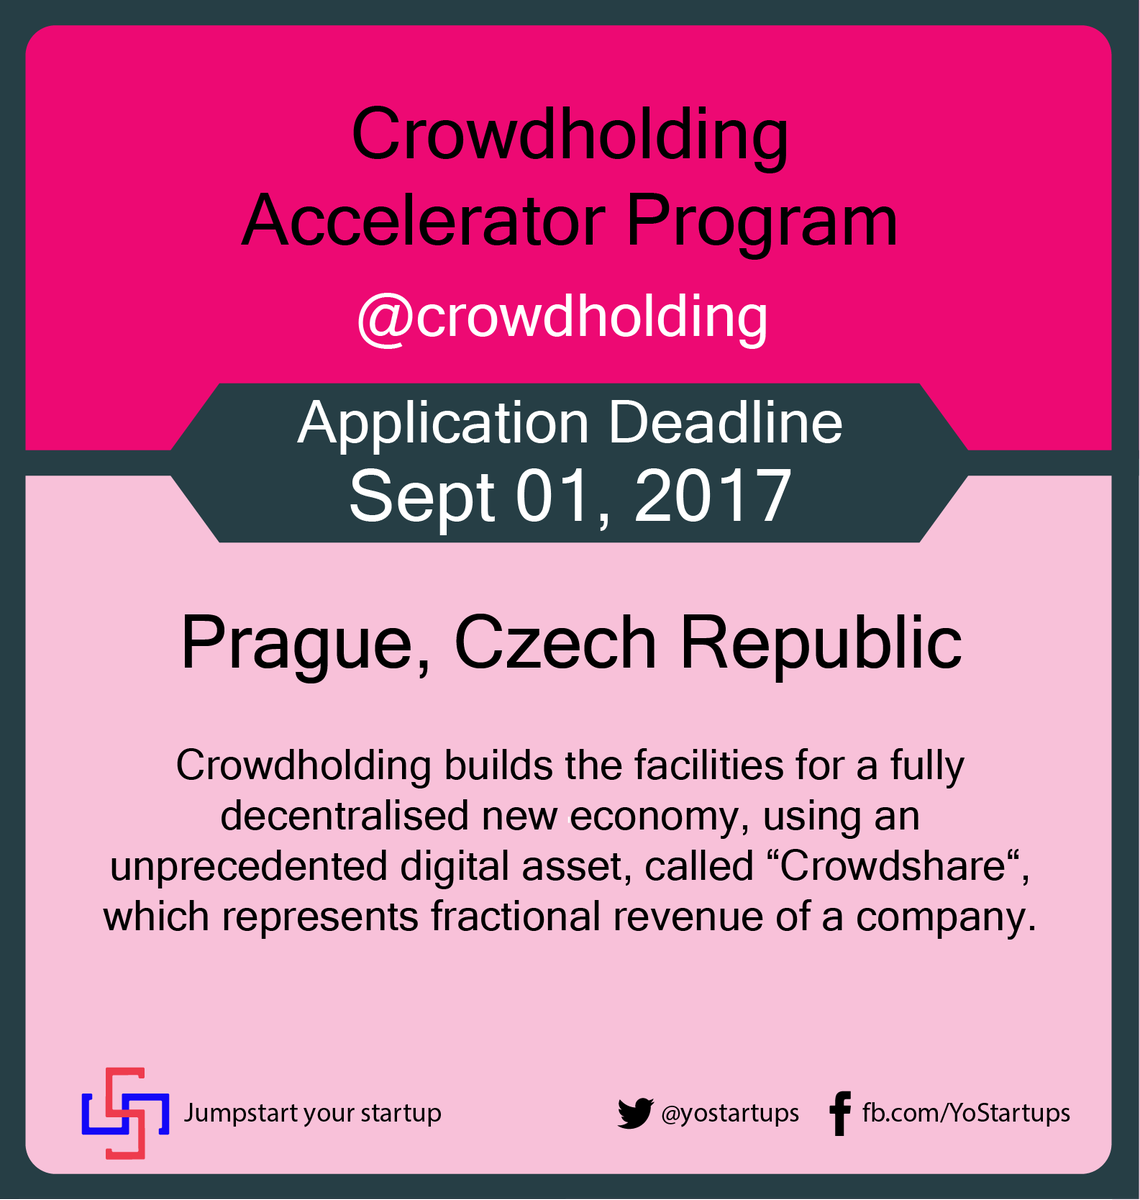 Checkout @crowdholding connects crowd with #entrepreneurs for feedback &amp; #ideas for #future revenue #accelerator  https:// goo.gl/9LaAWs  &nbsp;   <br>http://pic.twitter.com/cgtXVx3BIh